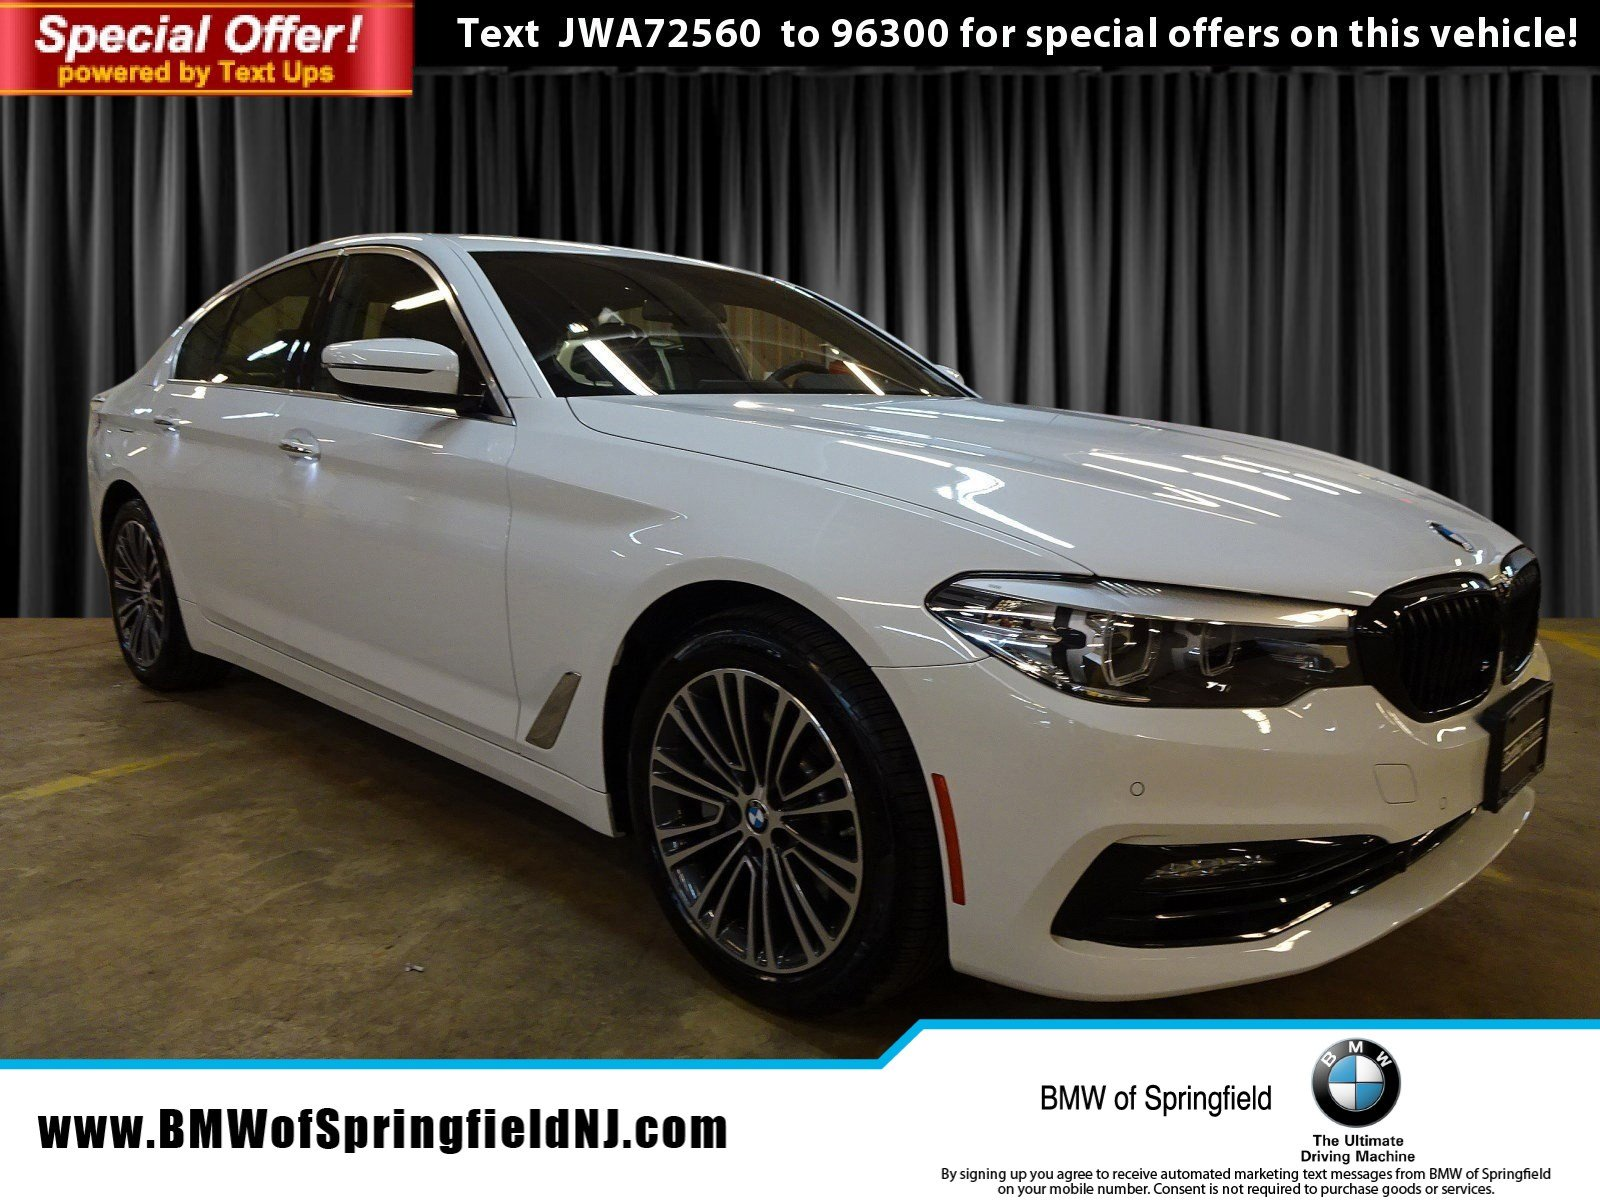 Certified Pre-Owned 2018 BMW 5 Series 530i xDrive With Navigation & AWD